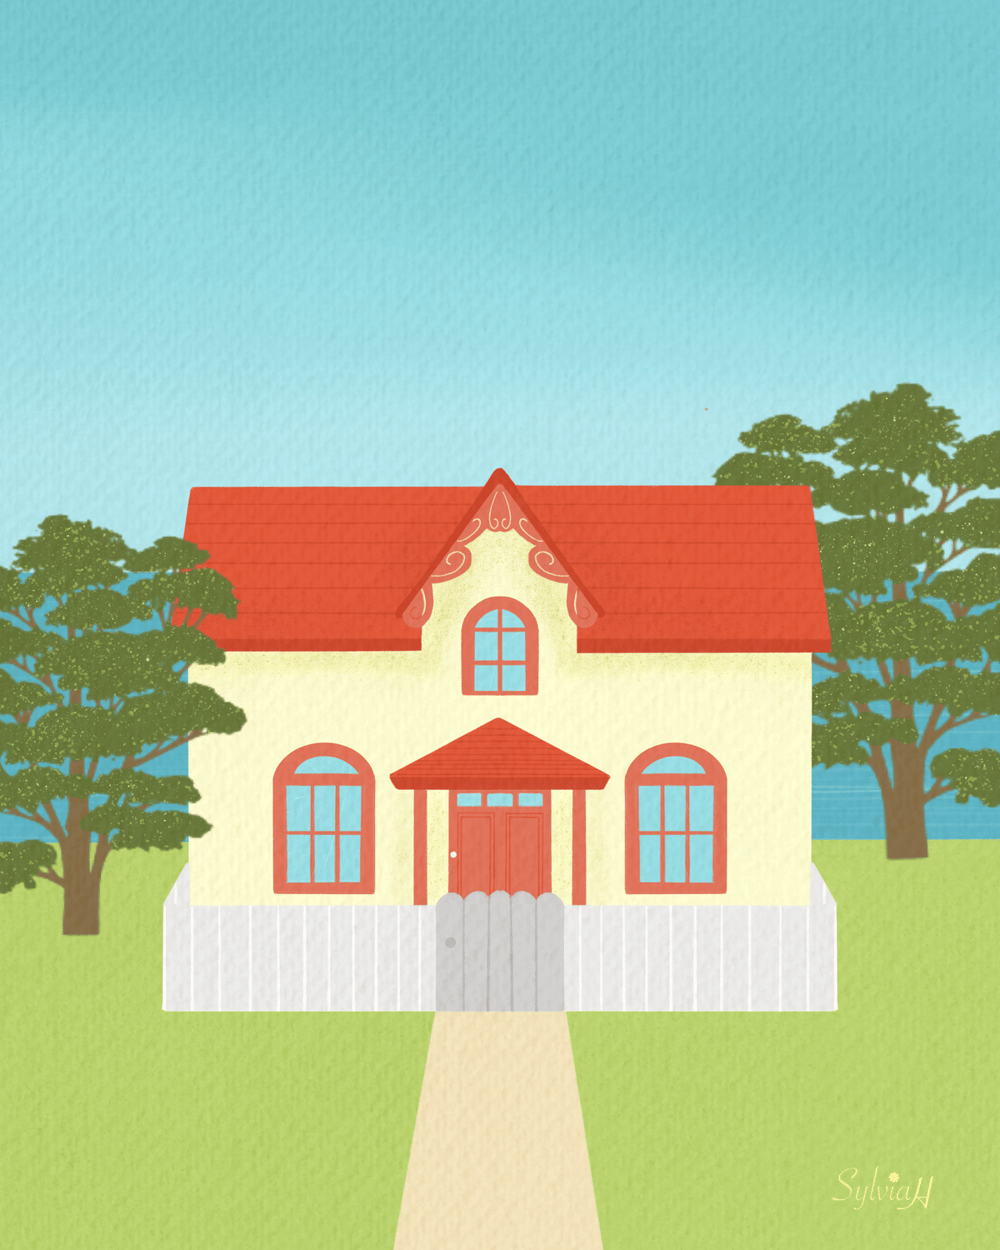 Dream House - image 1 - student project